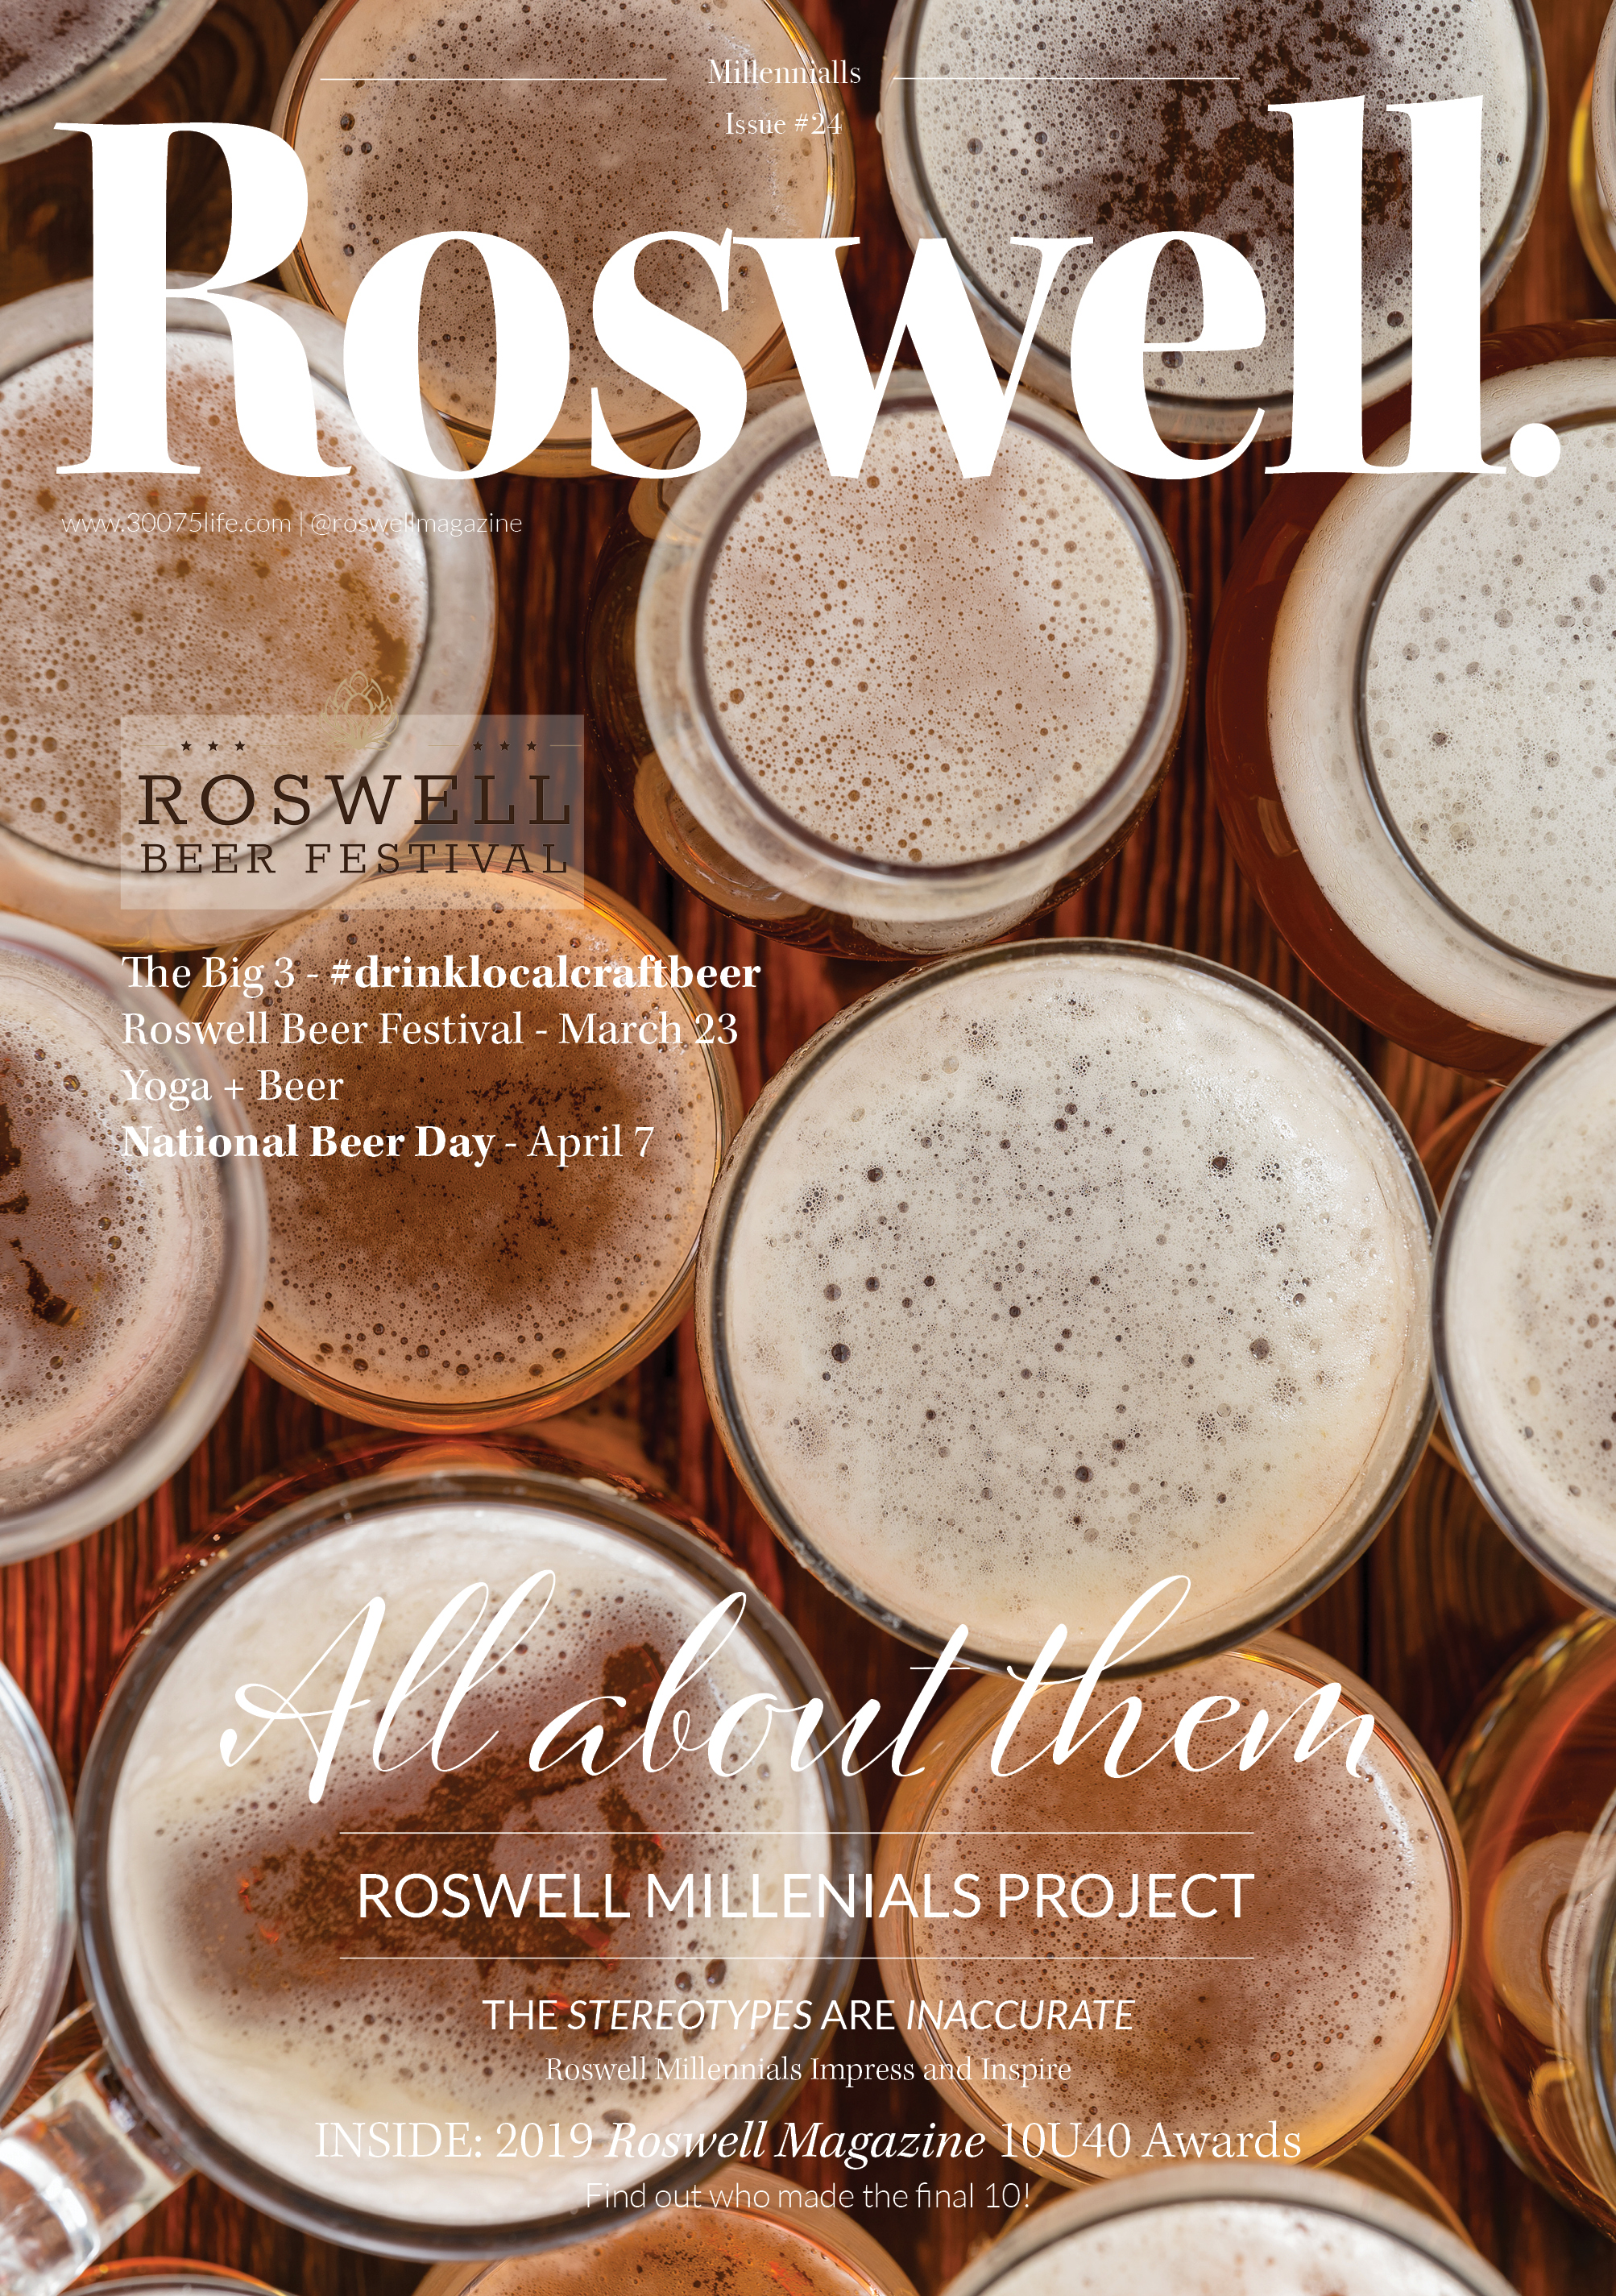 Issue #24 | All About Them - Click to read how Roswell Millennials are smashing the generational stereotypes and leading us into bright days ahead locally.